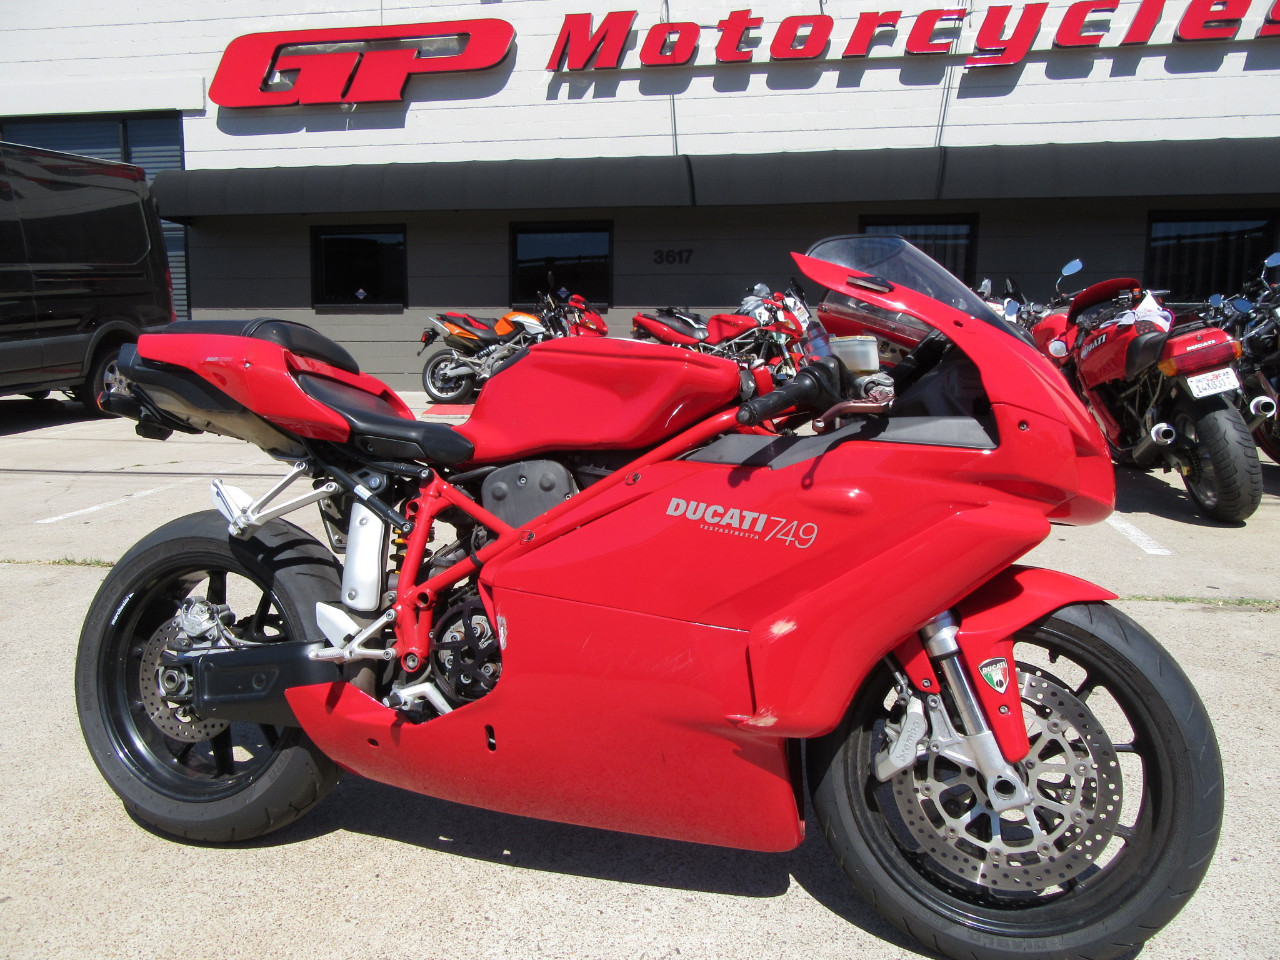 3 Ducati Superbike 749 Mini Motorcycles For Sale 2005 Wiring Harness